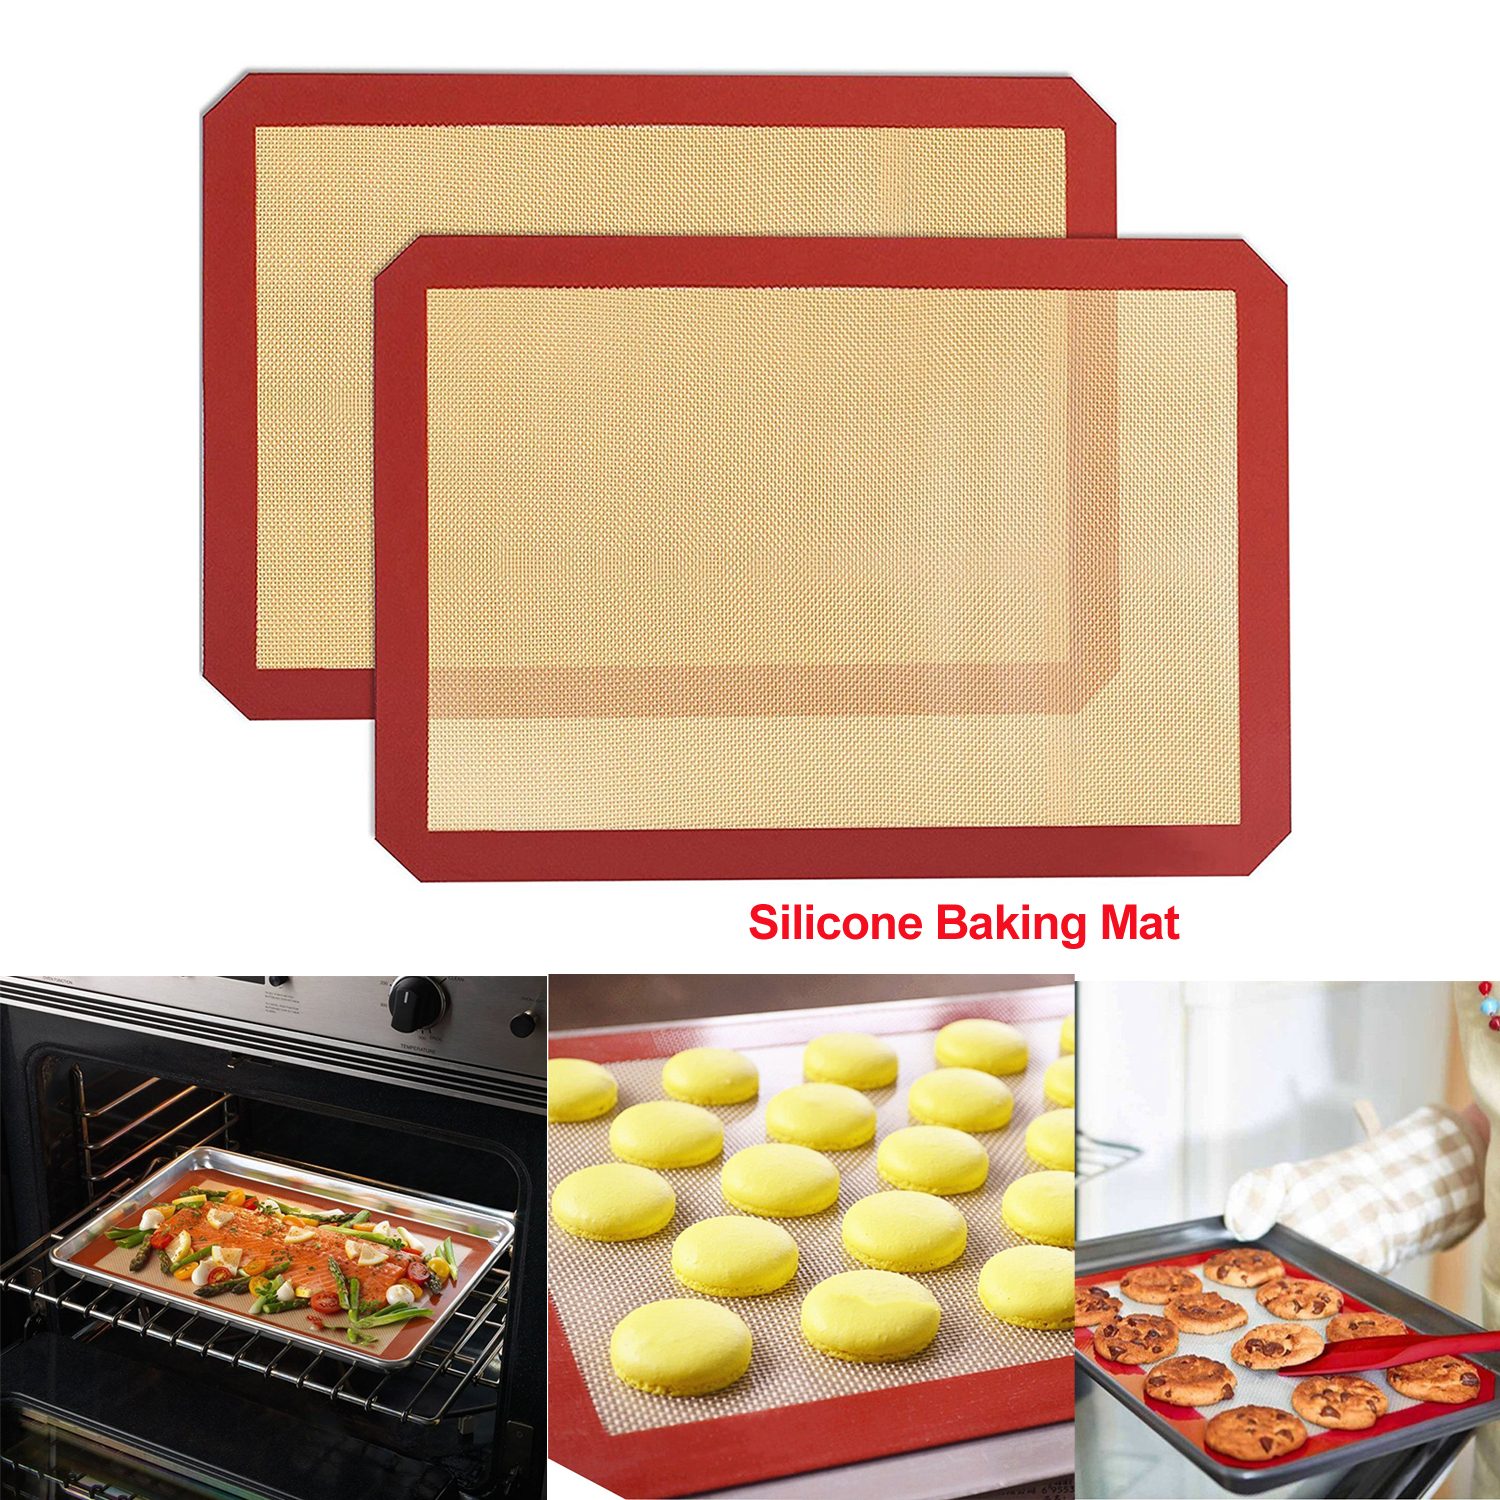 Large Size For Cake Cookie Macaron Less Expensive 42*29.5cm Baking Sheet Glass Fiber Rolling Dough Mat Considerate Hot Non-stick Silicone Baking Mat Pad